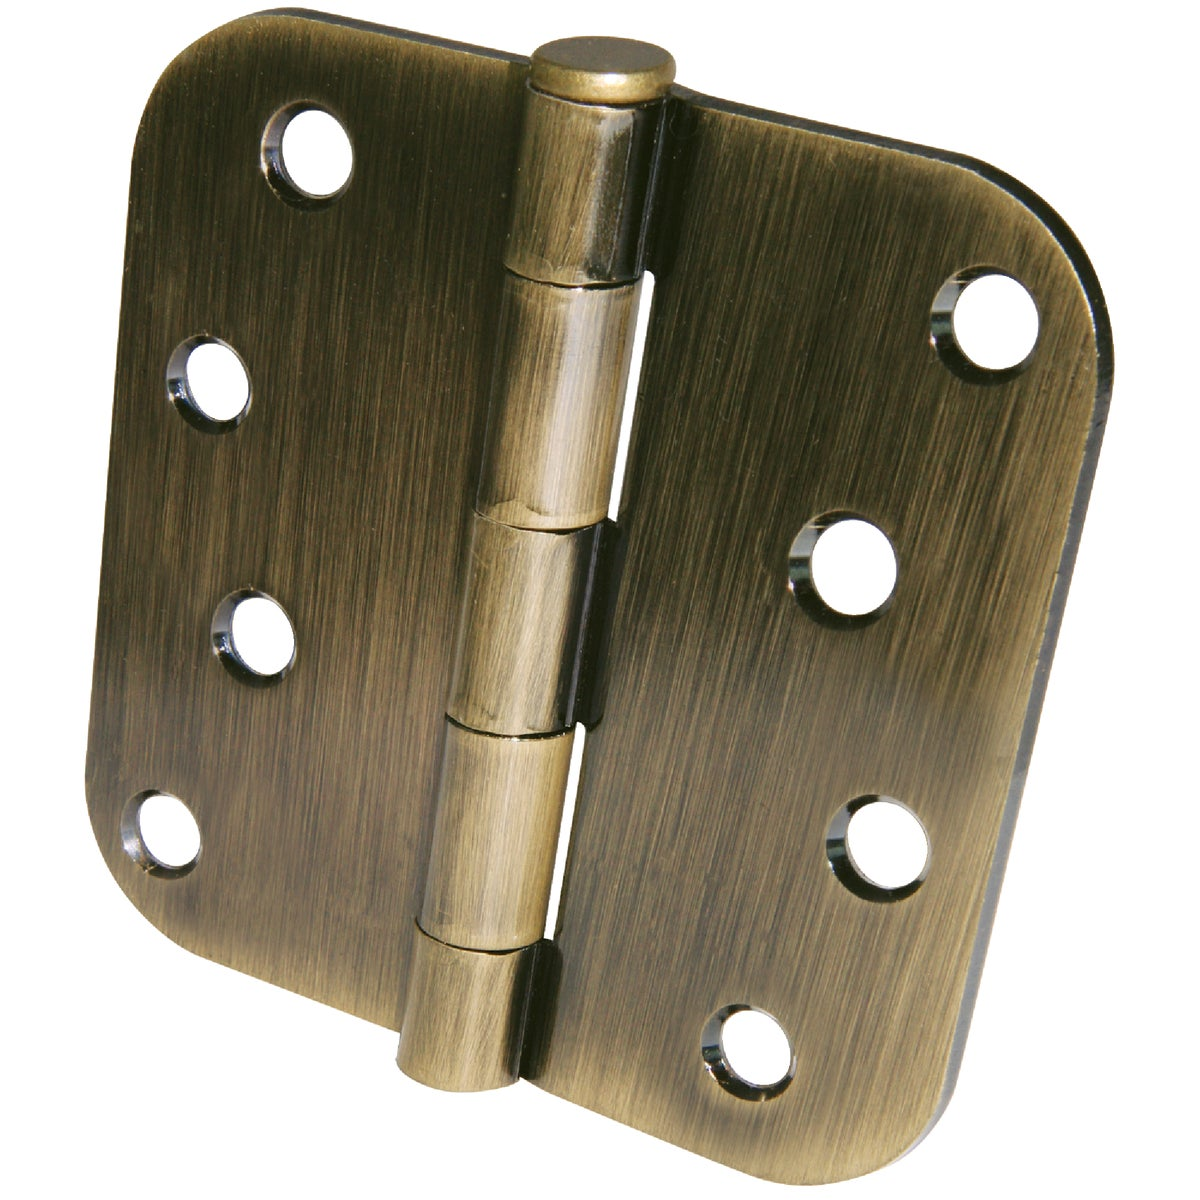 "4"" 5/8"" RAD AB 3PK HINGE - 61753 by Ultra Hardware"